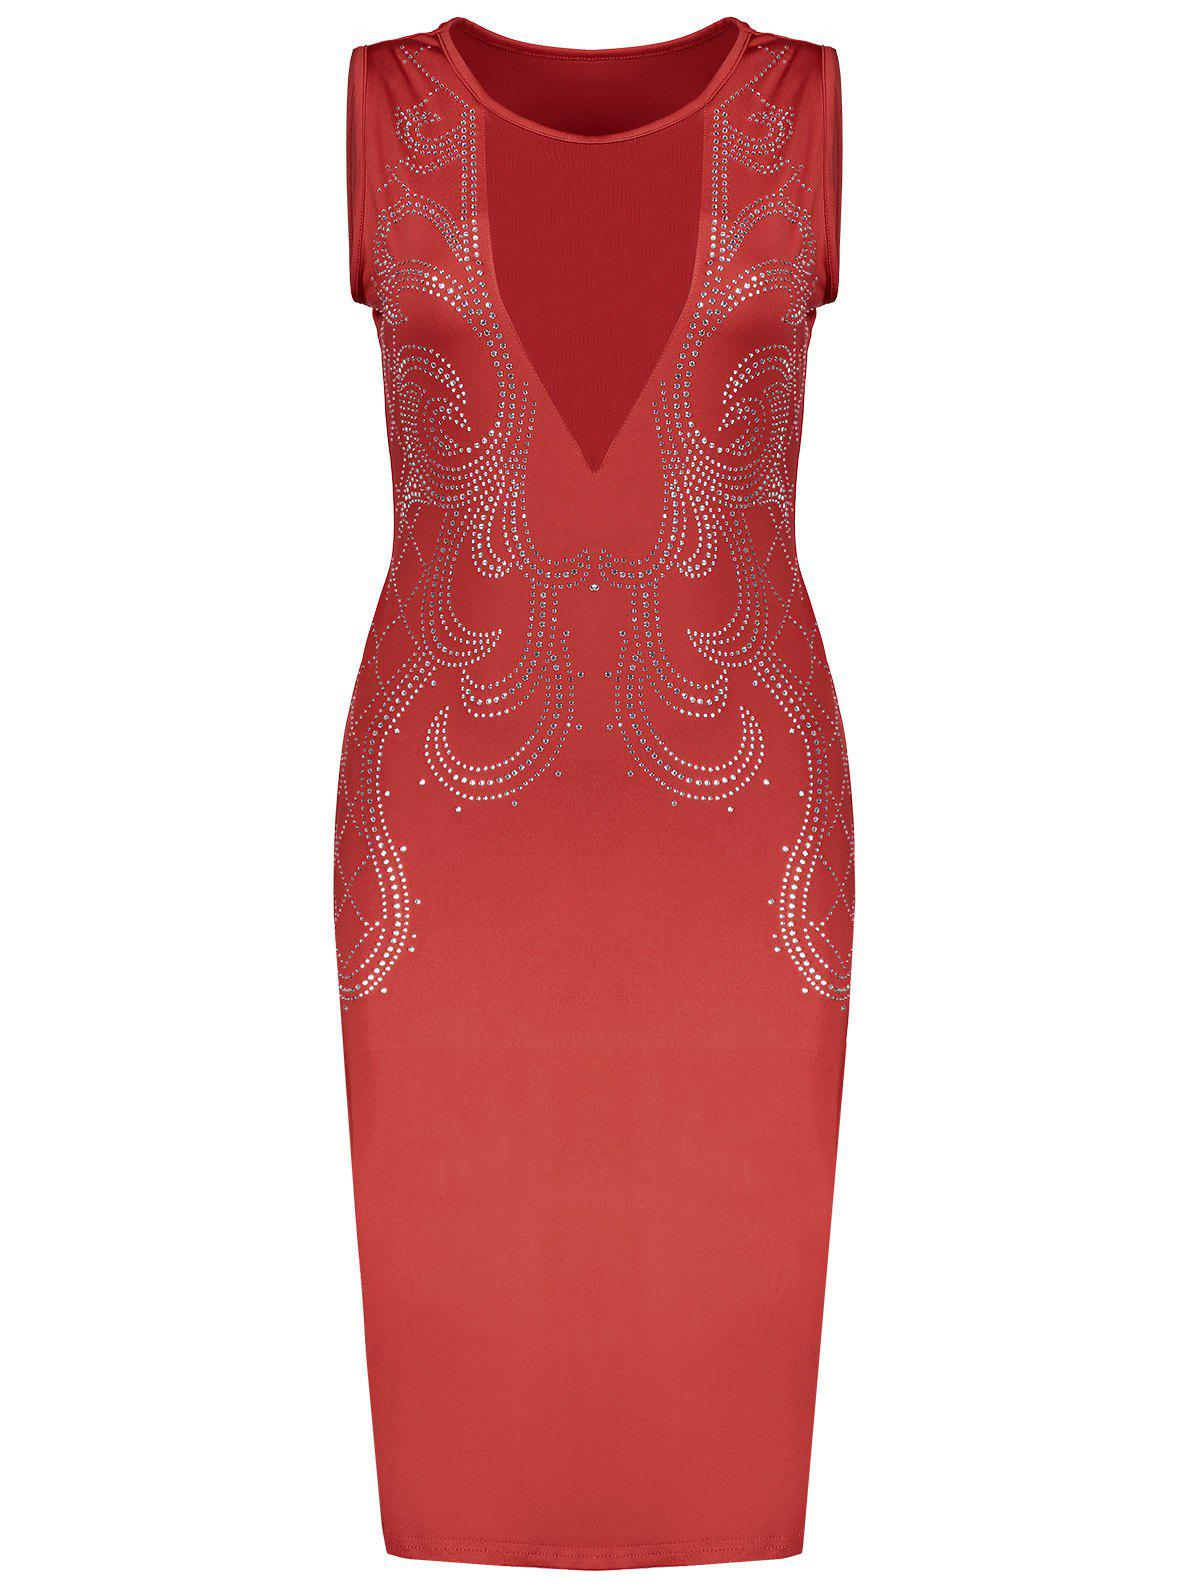 Tight Formal Low Cut Mesh Sequined Bodycon Dress 208239407